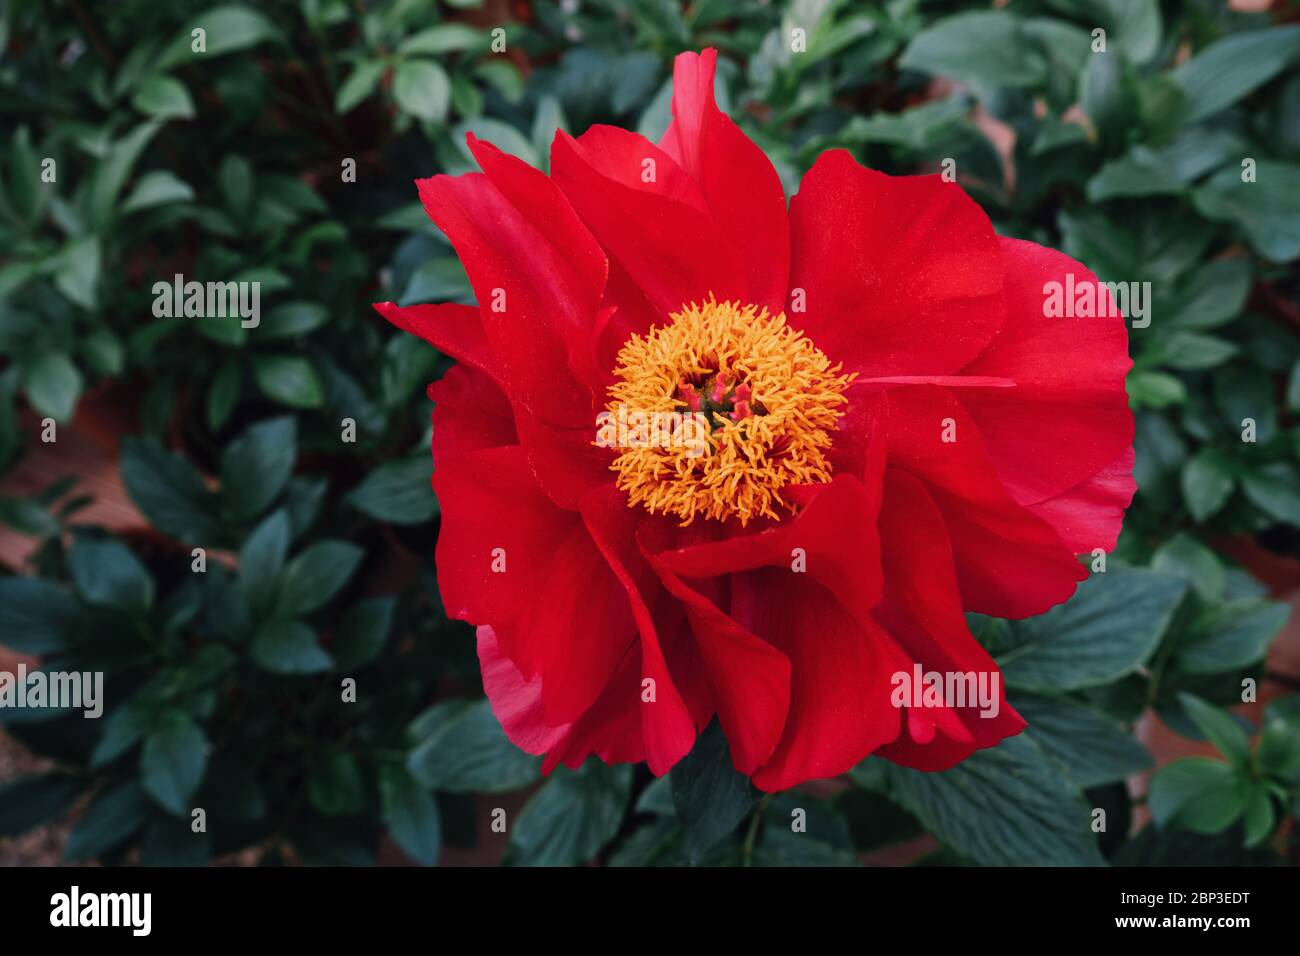 Beautiful fresh scarlet red peony flower in full bloom in the garden. Stock Photo